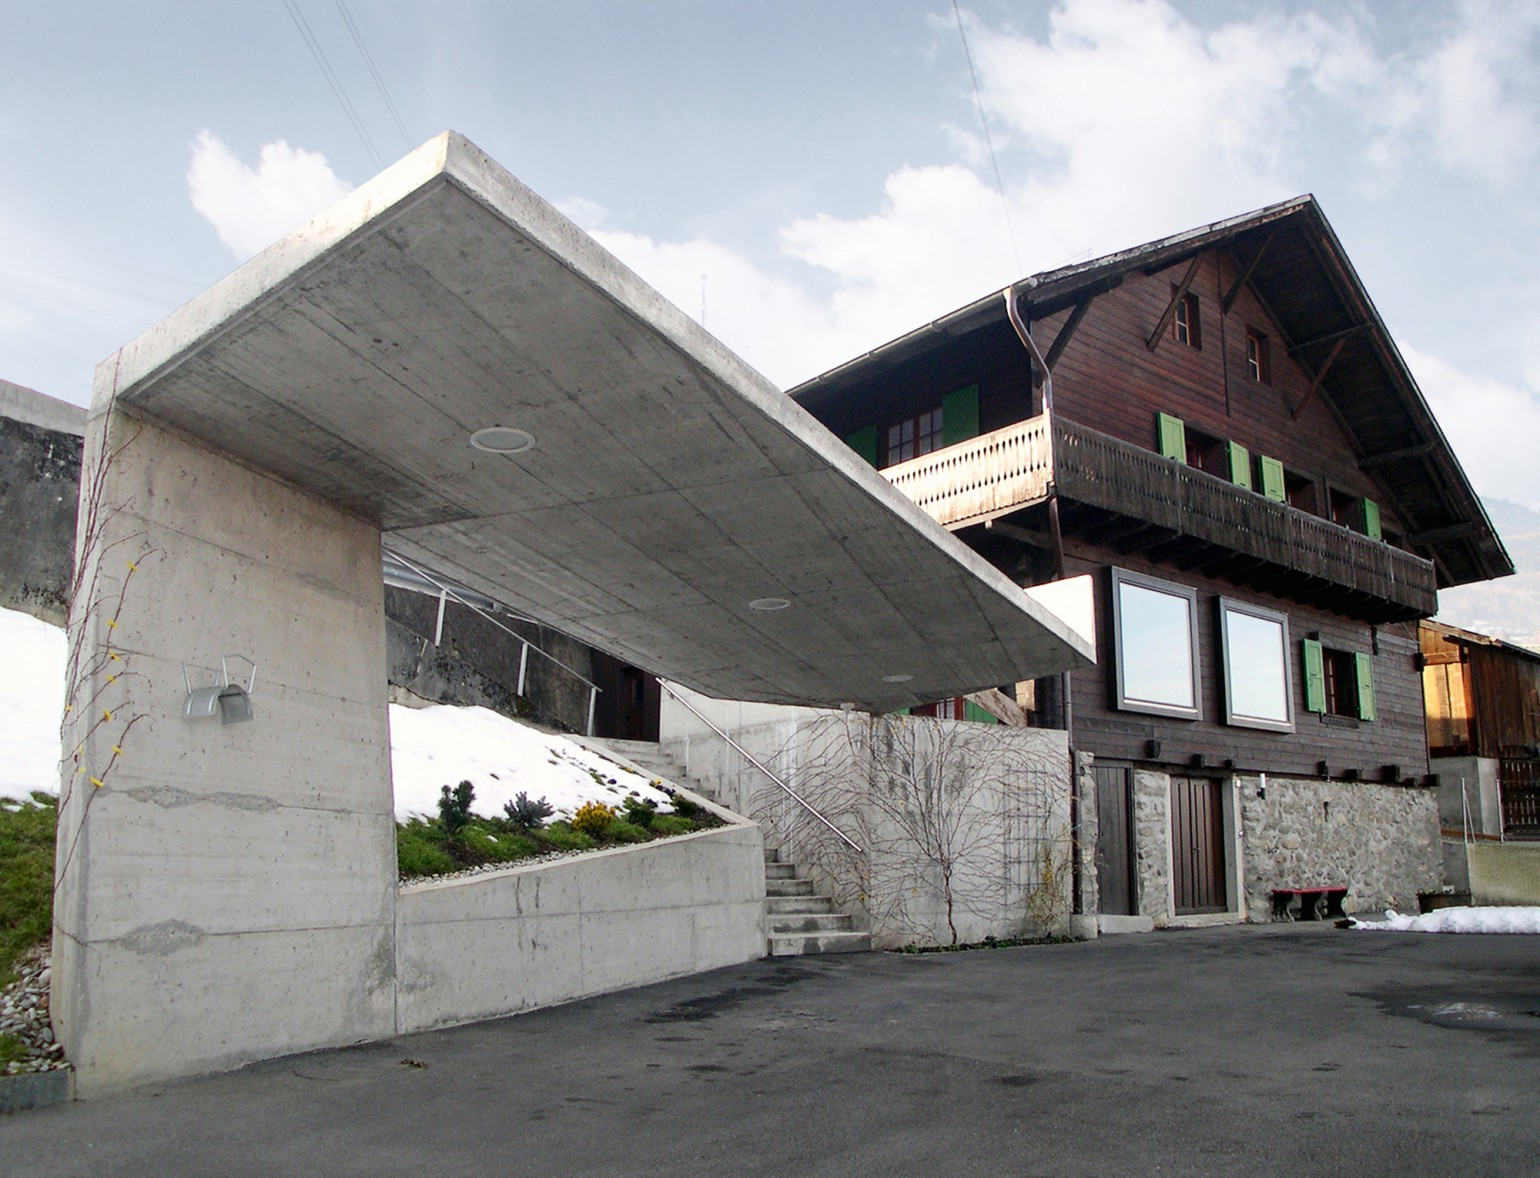 rural-meyer-transformation-choex-meyer-architecture-sion-01